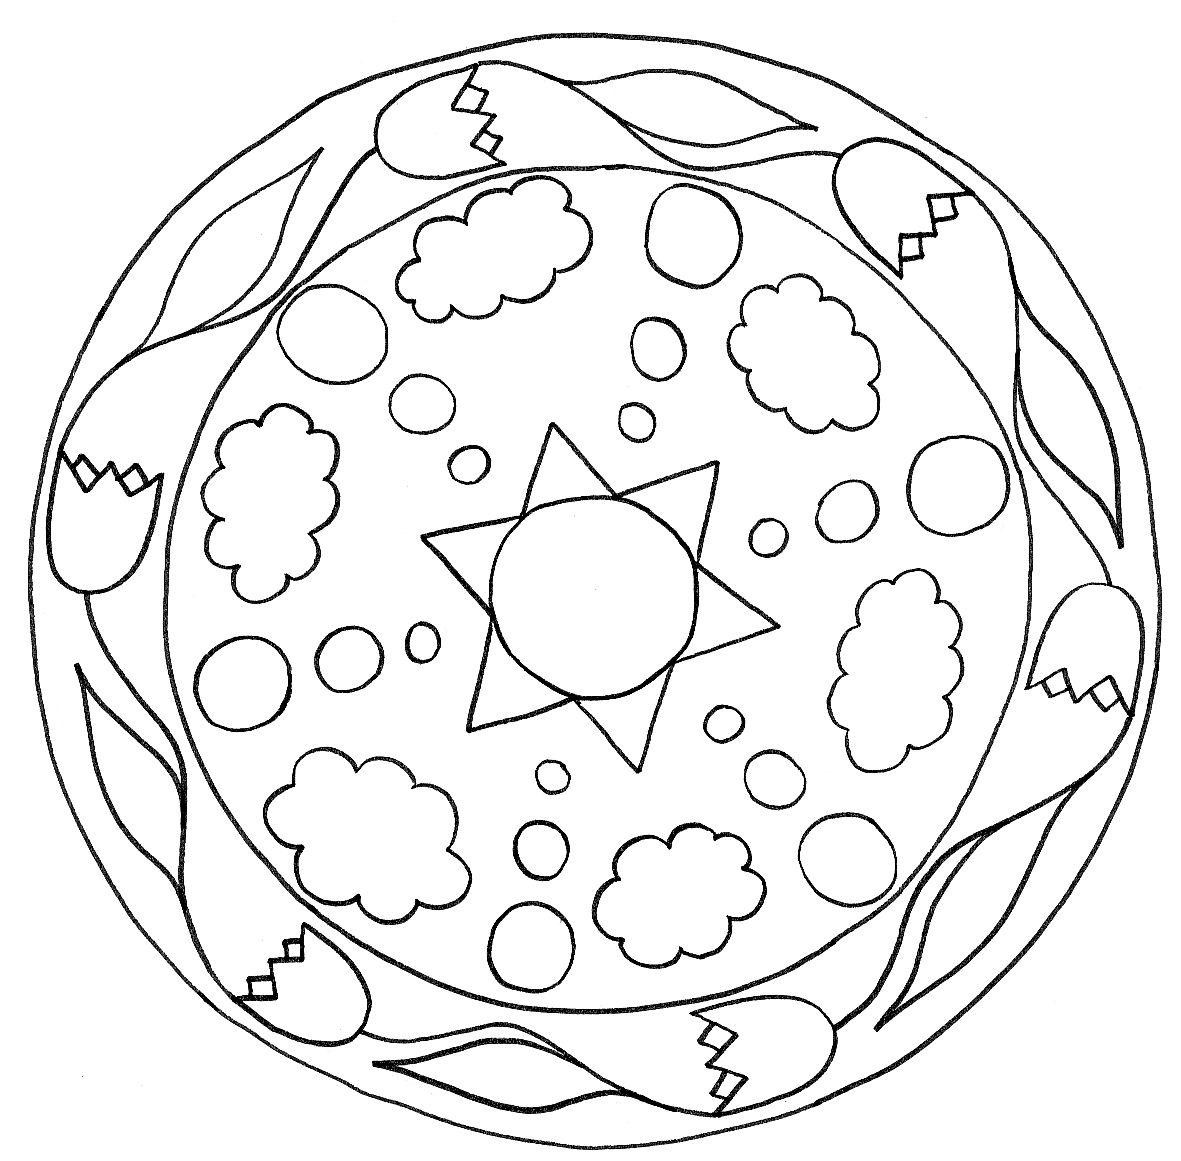 Best ideas about Free Mandala Coloring Pages For Kids . Save or Pin Free Printable Mandalas for Kids Best Coloring Pages For Now.